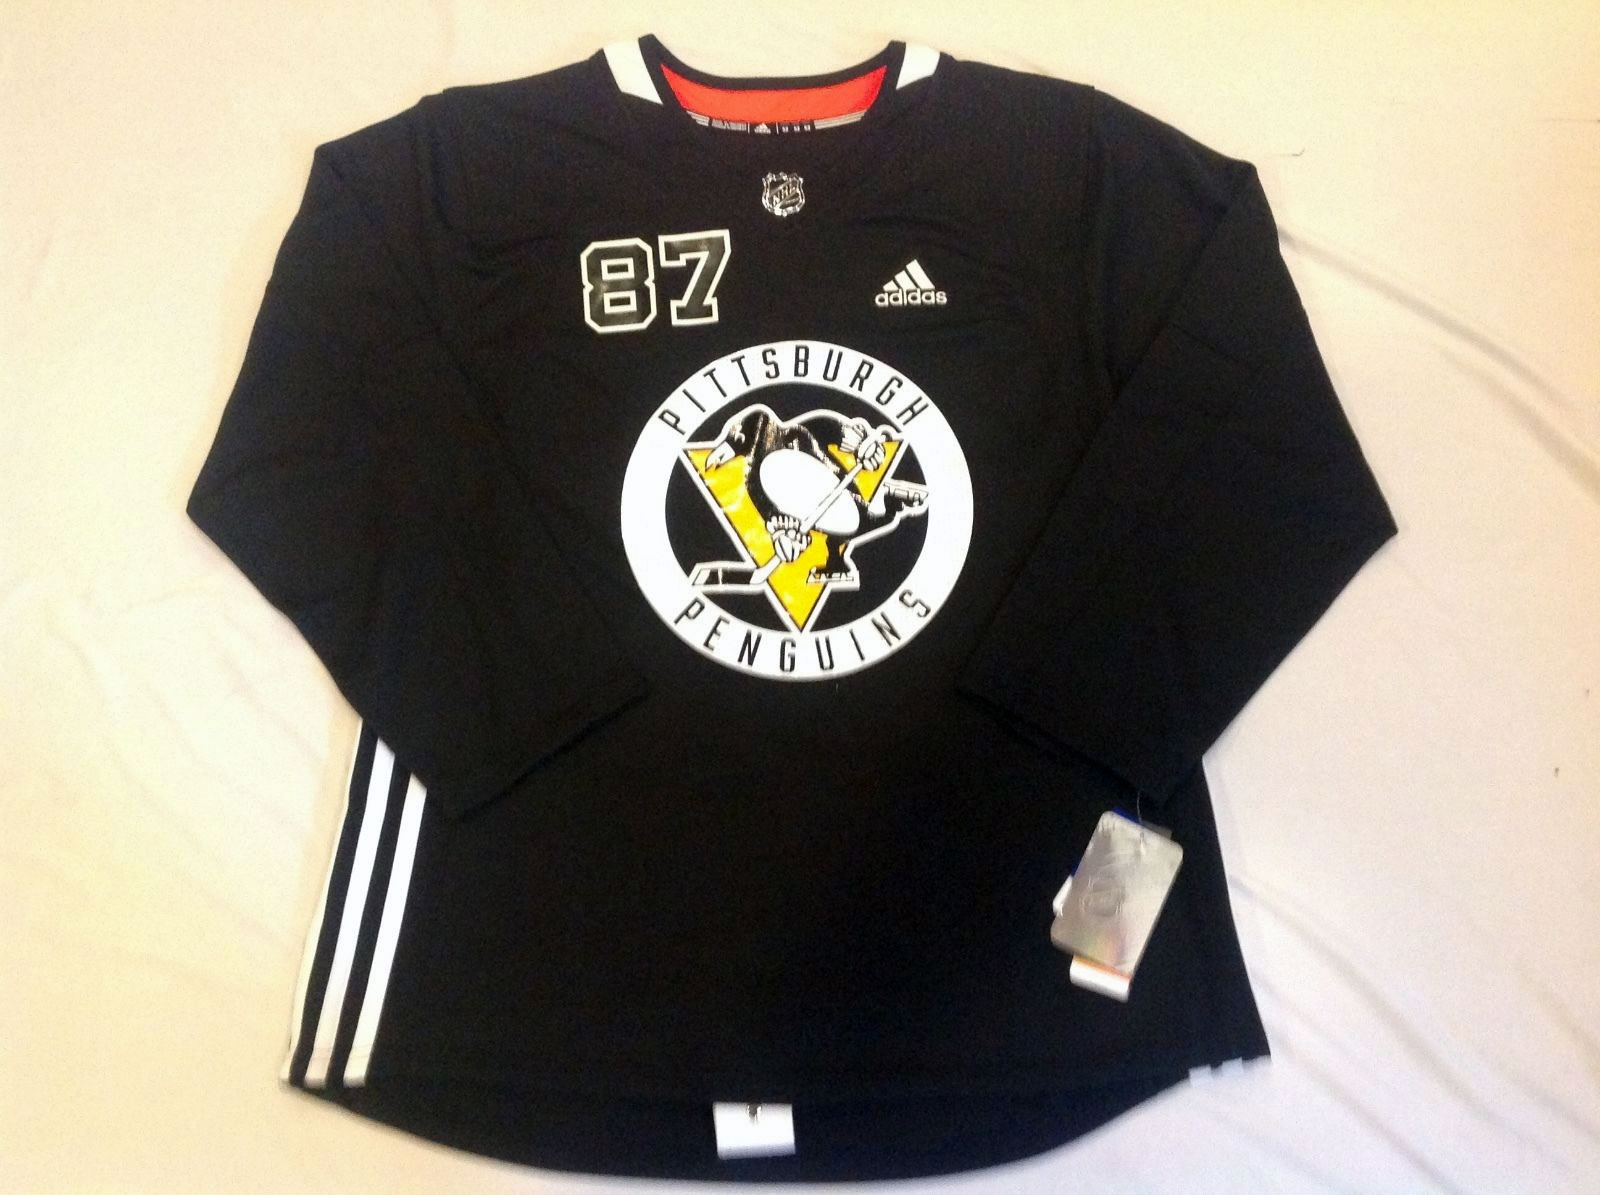 lowest price 24a83 4ba4c Adidas NHL Practice Jersey | Chris Creamer's SportsLogos.Net ...